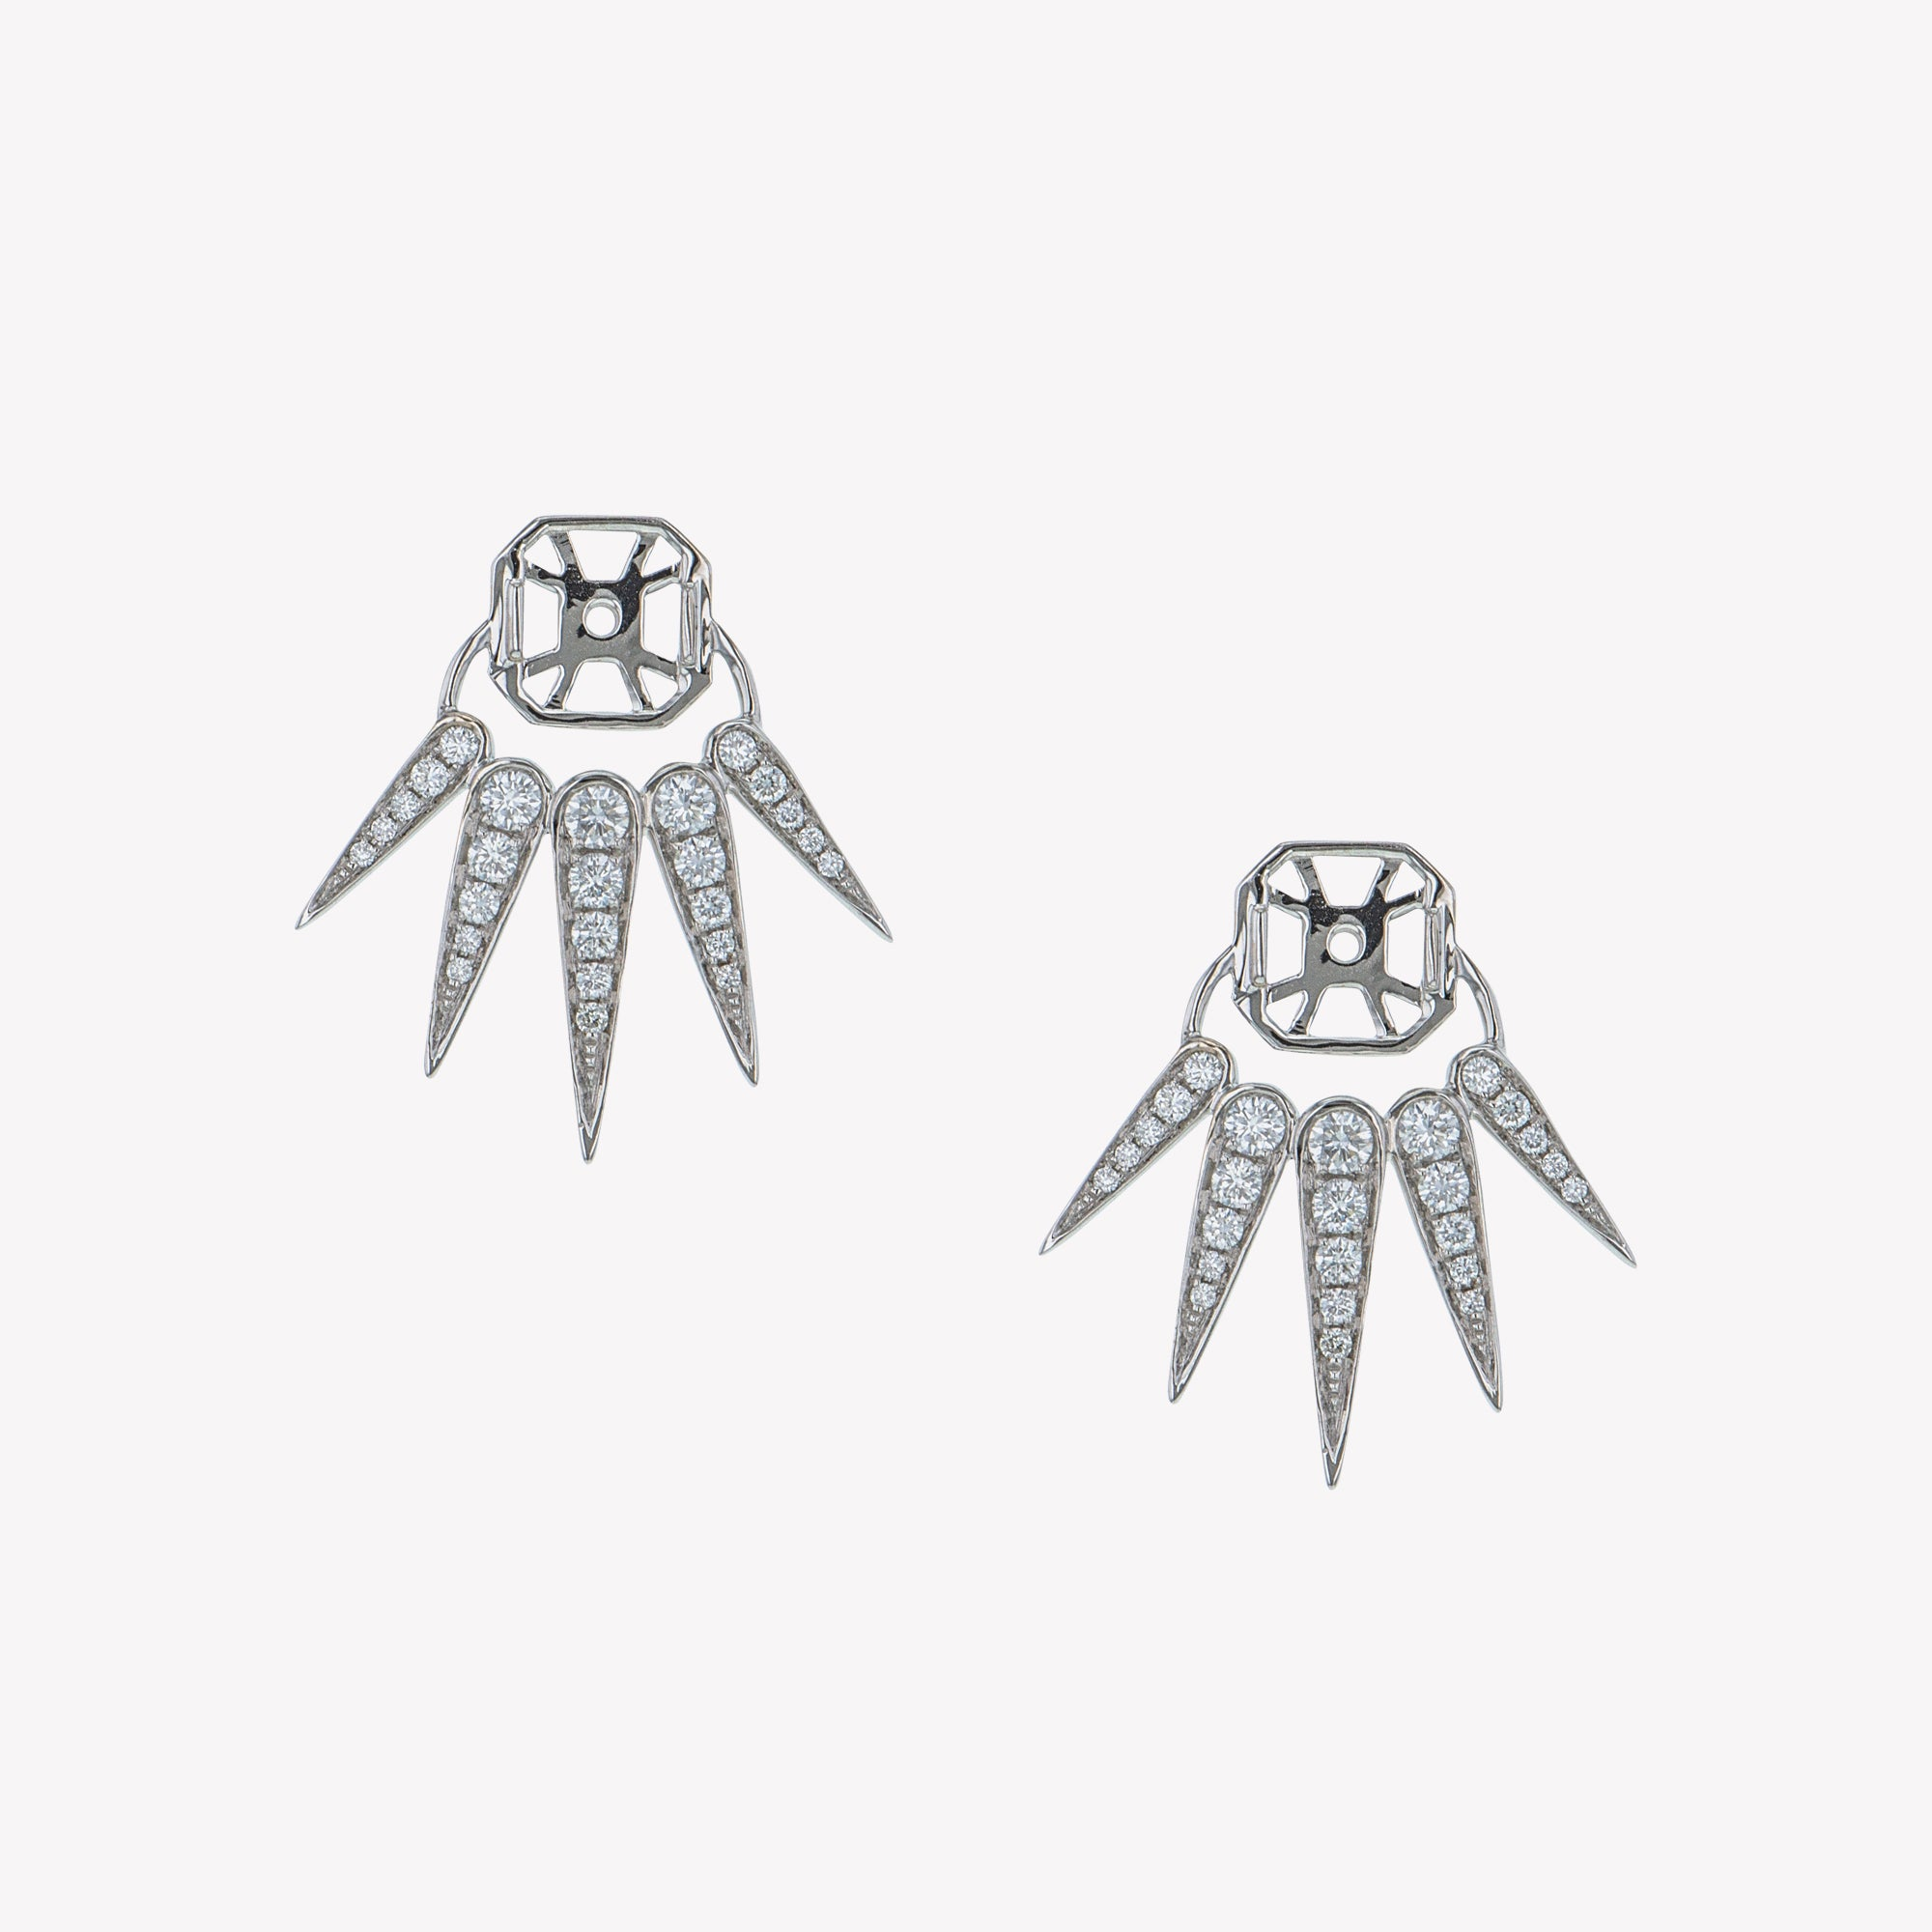 Spike Accessories For White Gold Ascher Studs